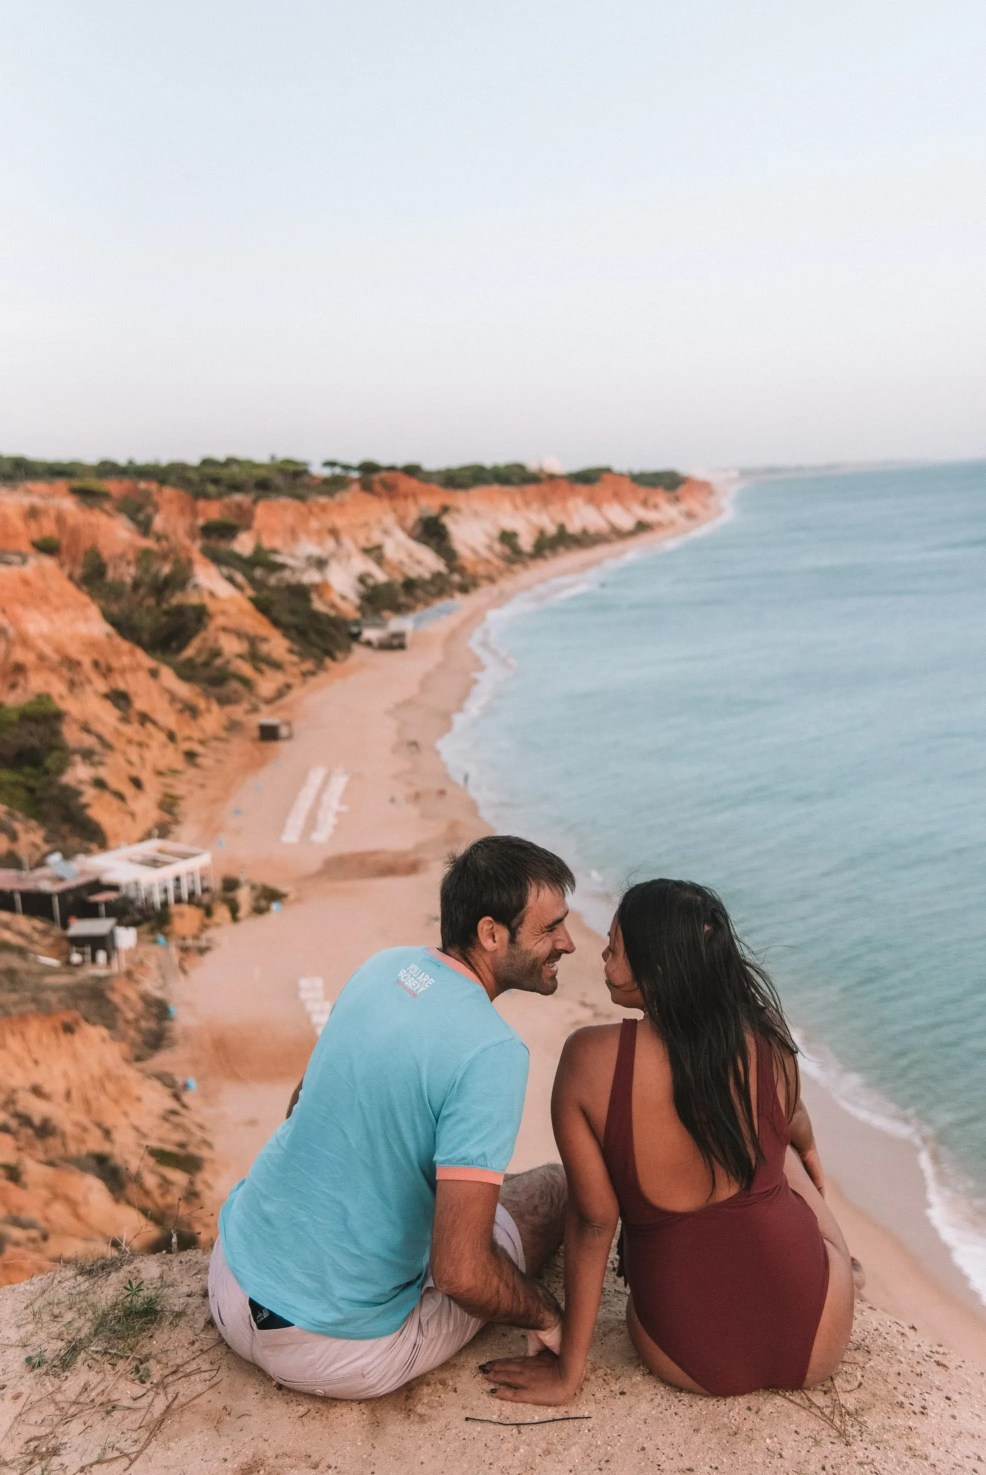 Budget travel in Portugal